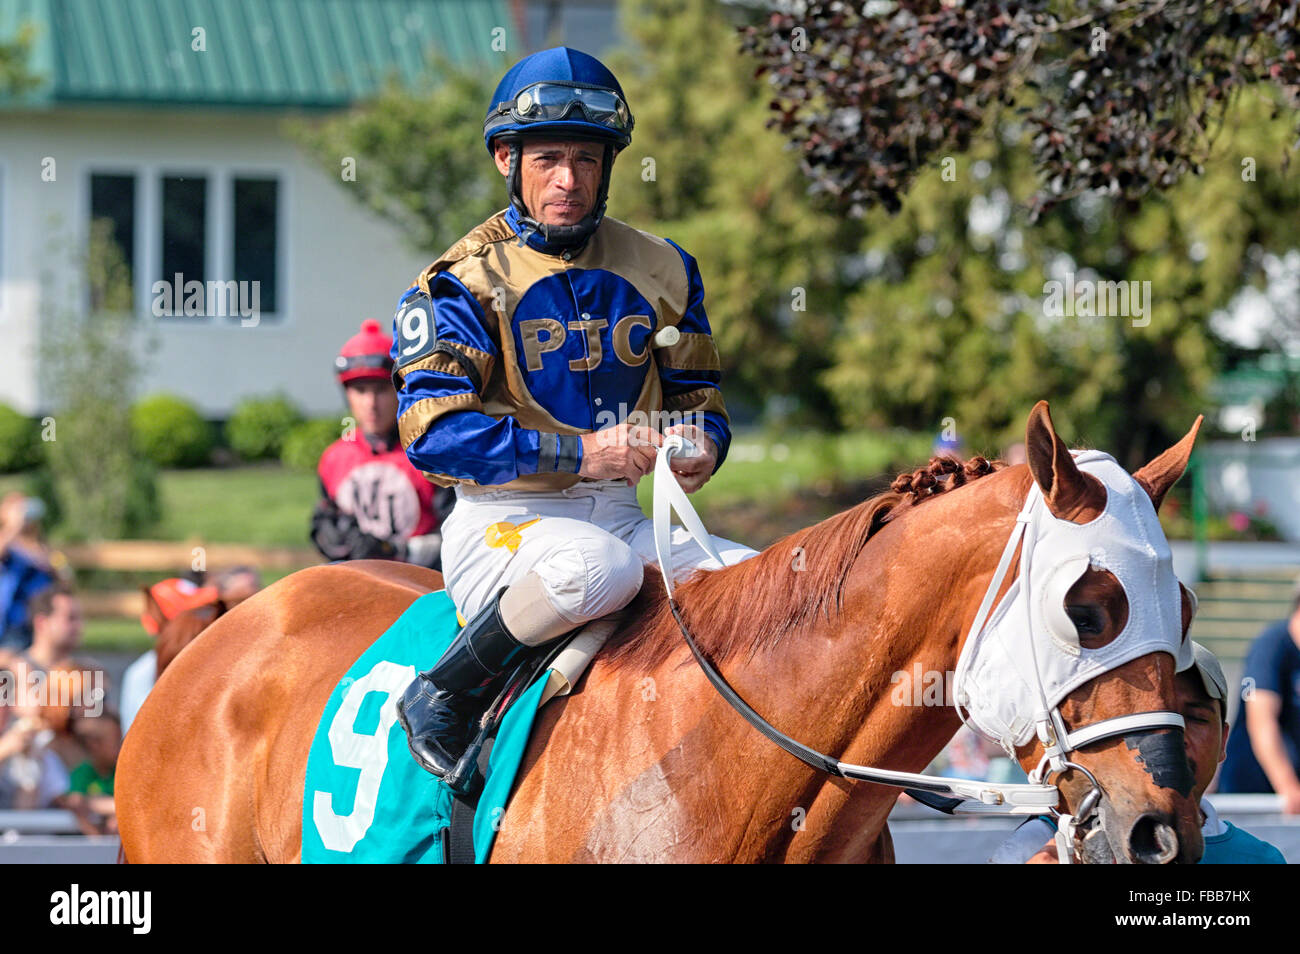 Close Up View of a Jockey Sitting on Horse,Monmouth Park Recetrack, Oceanport, New Jersey - Stock Image